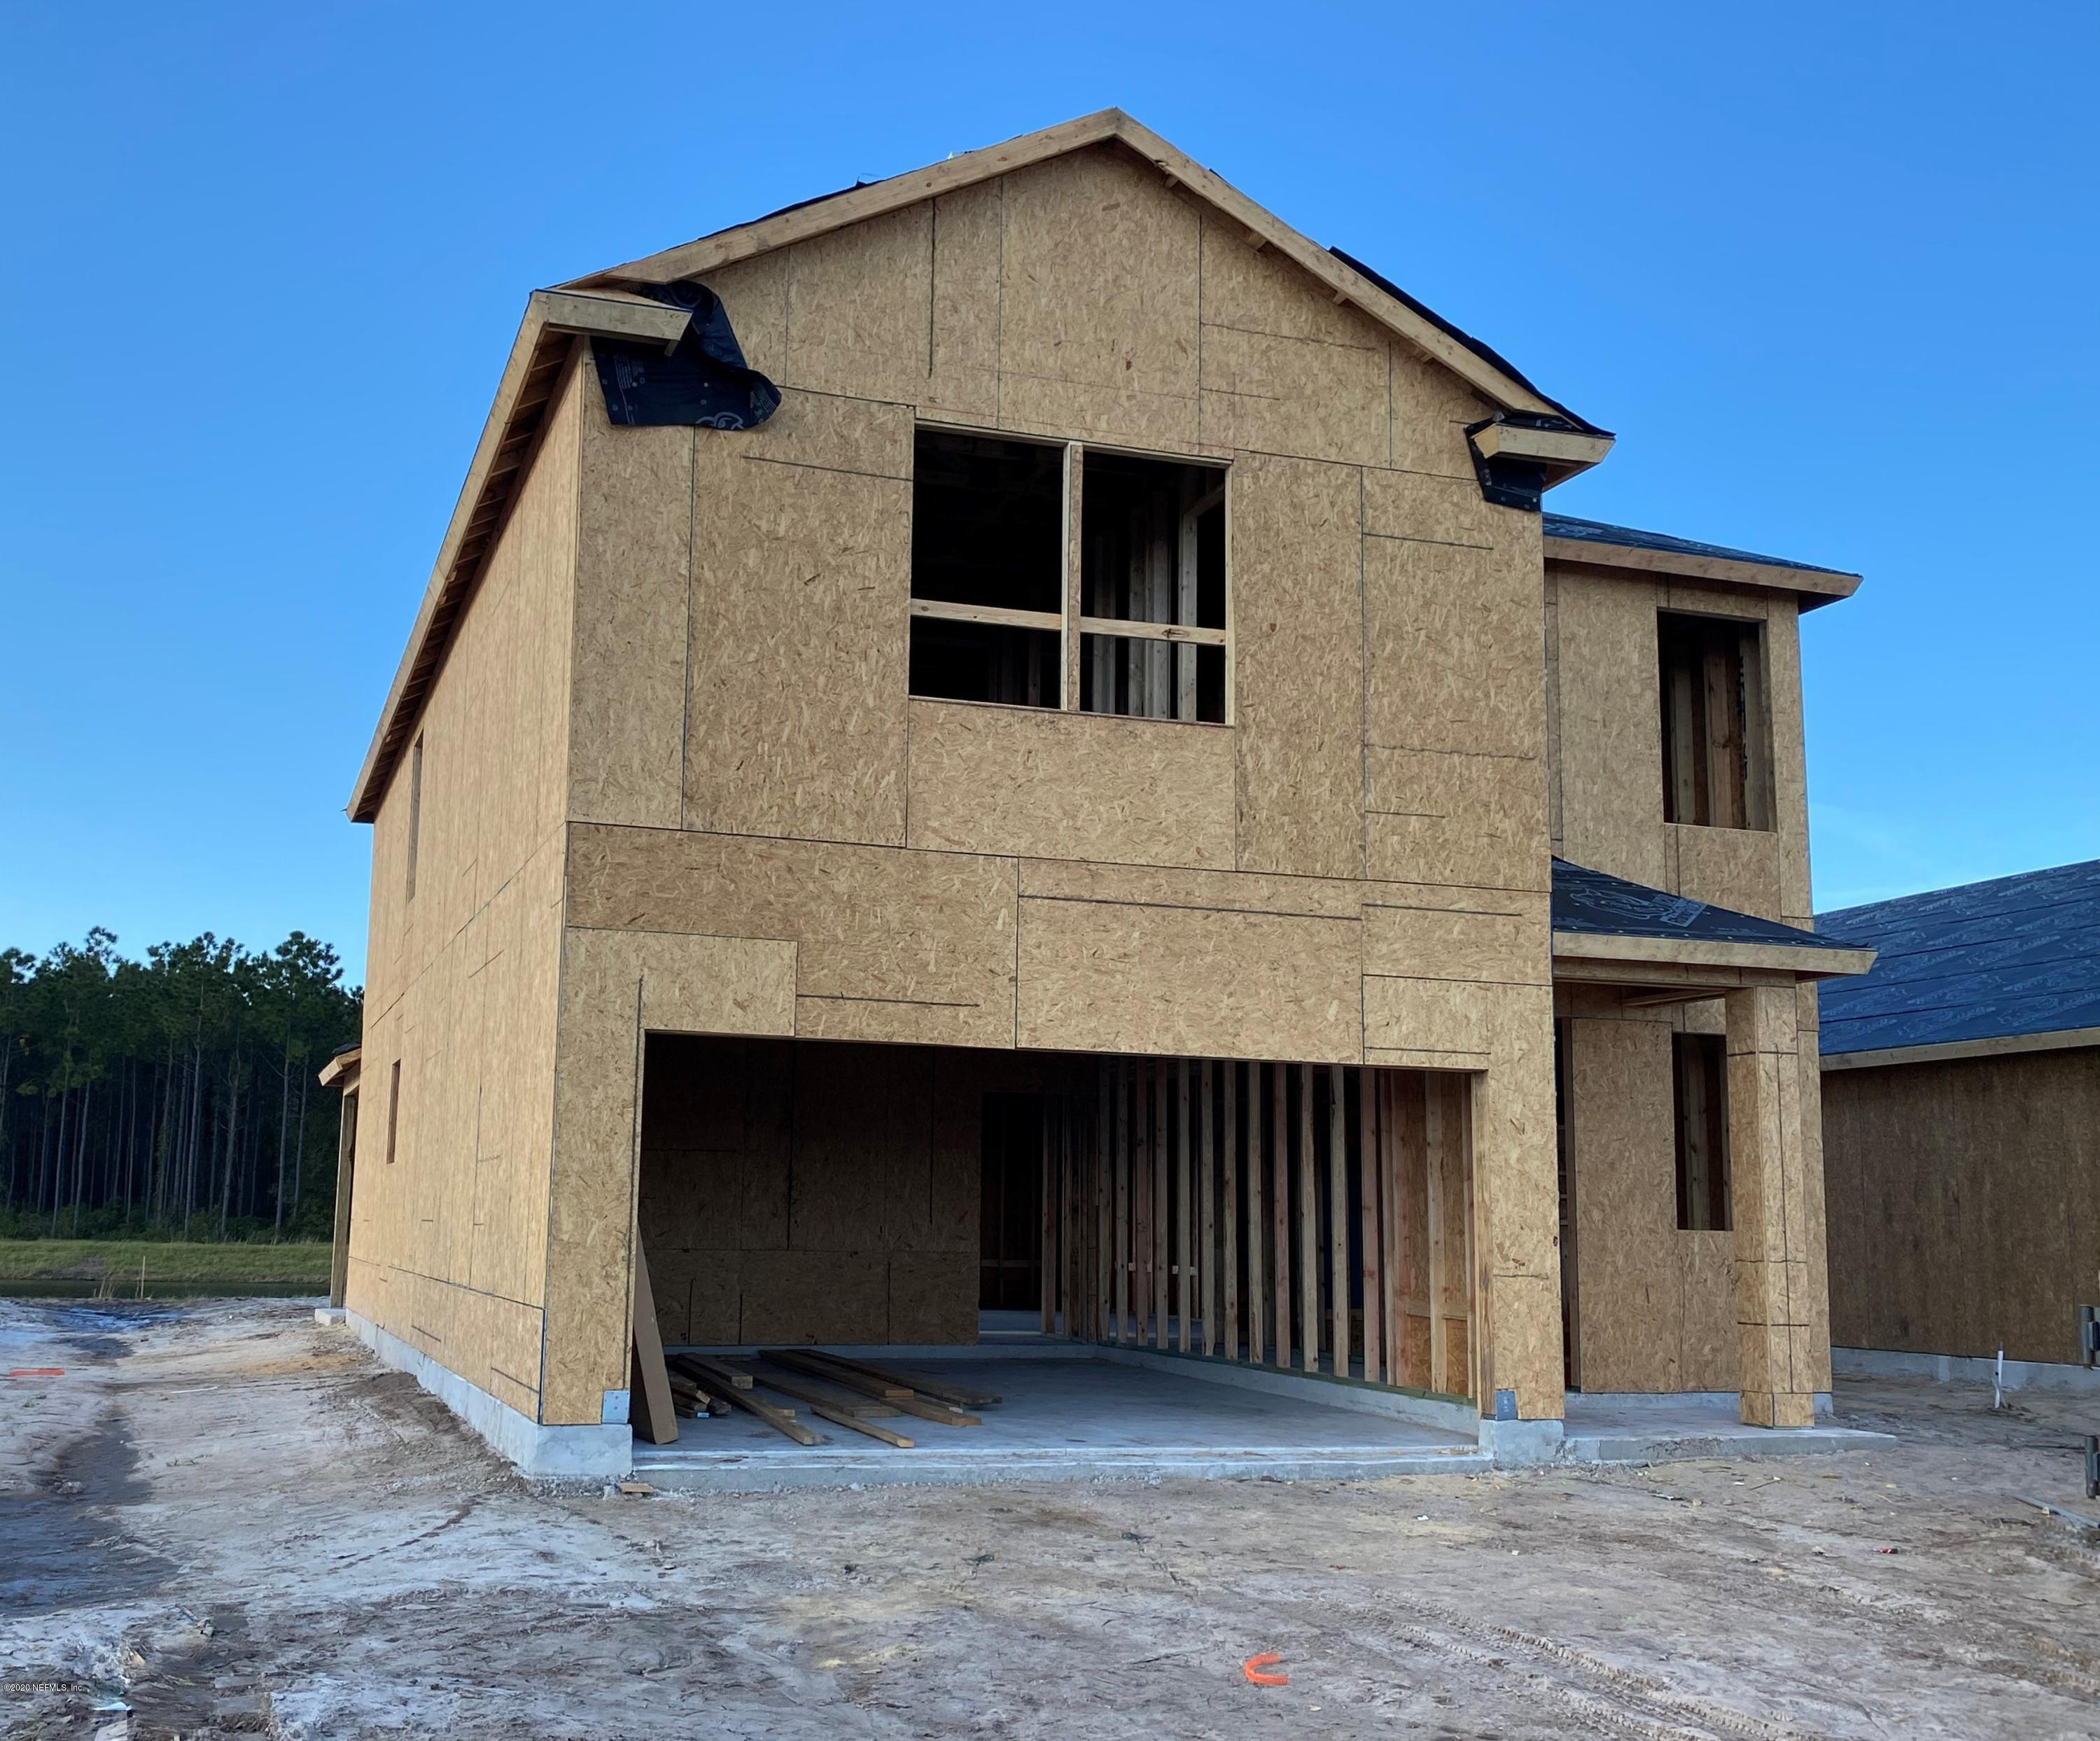 205 CREEKMORE, ST AUGUSTINE, FLORIDA 32092, 3 Bedrooms Bedrooms, ,2 BathroomsBathrooms,Residential,For sale,CREEKMORE,1080518